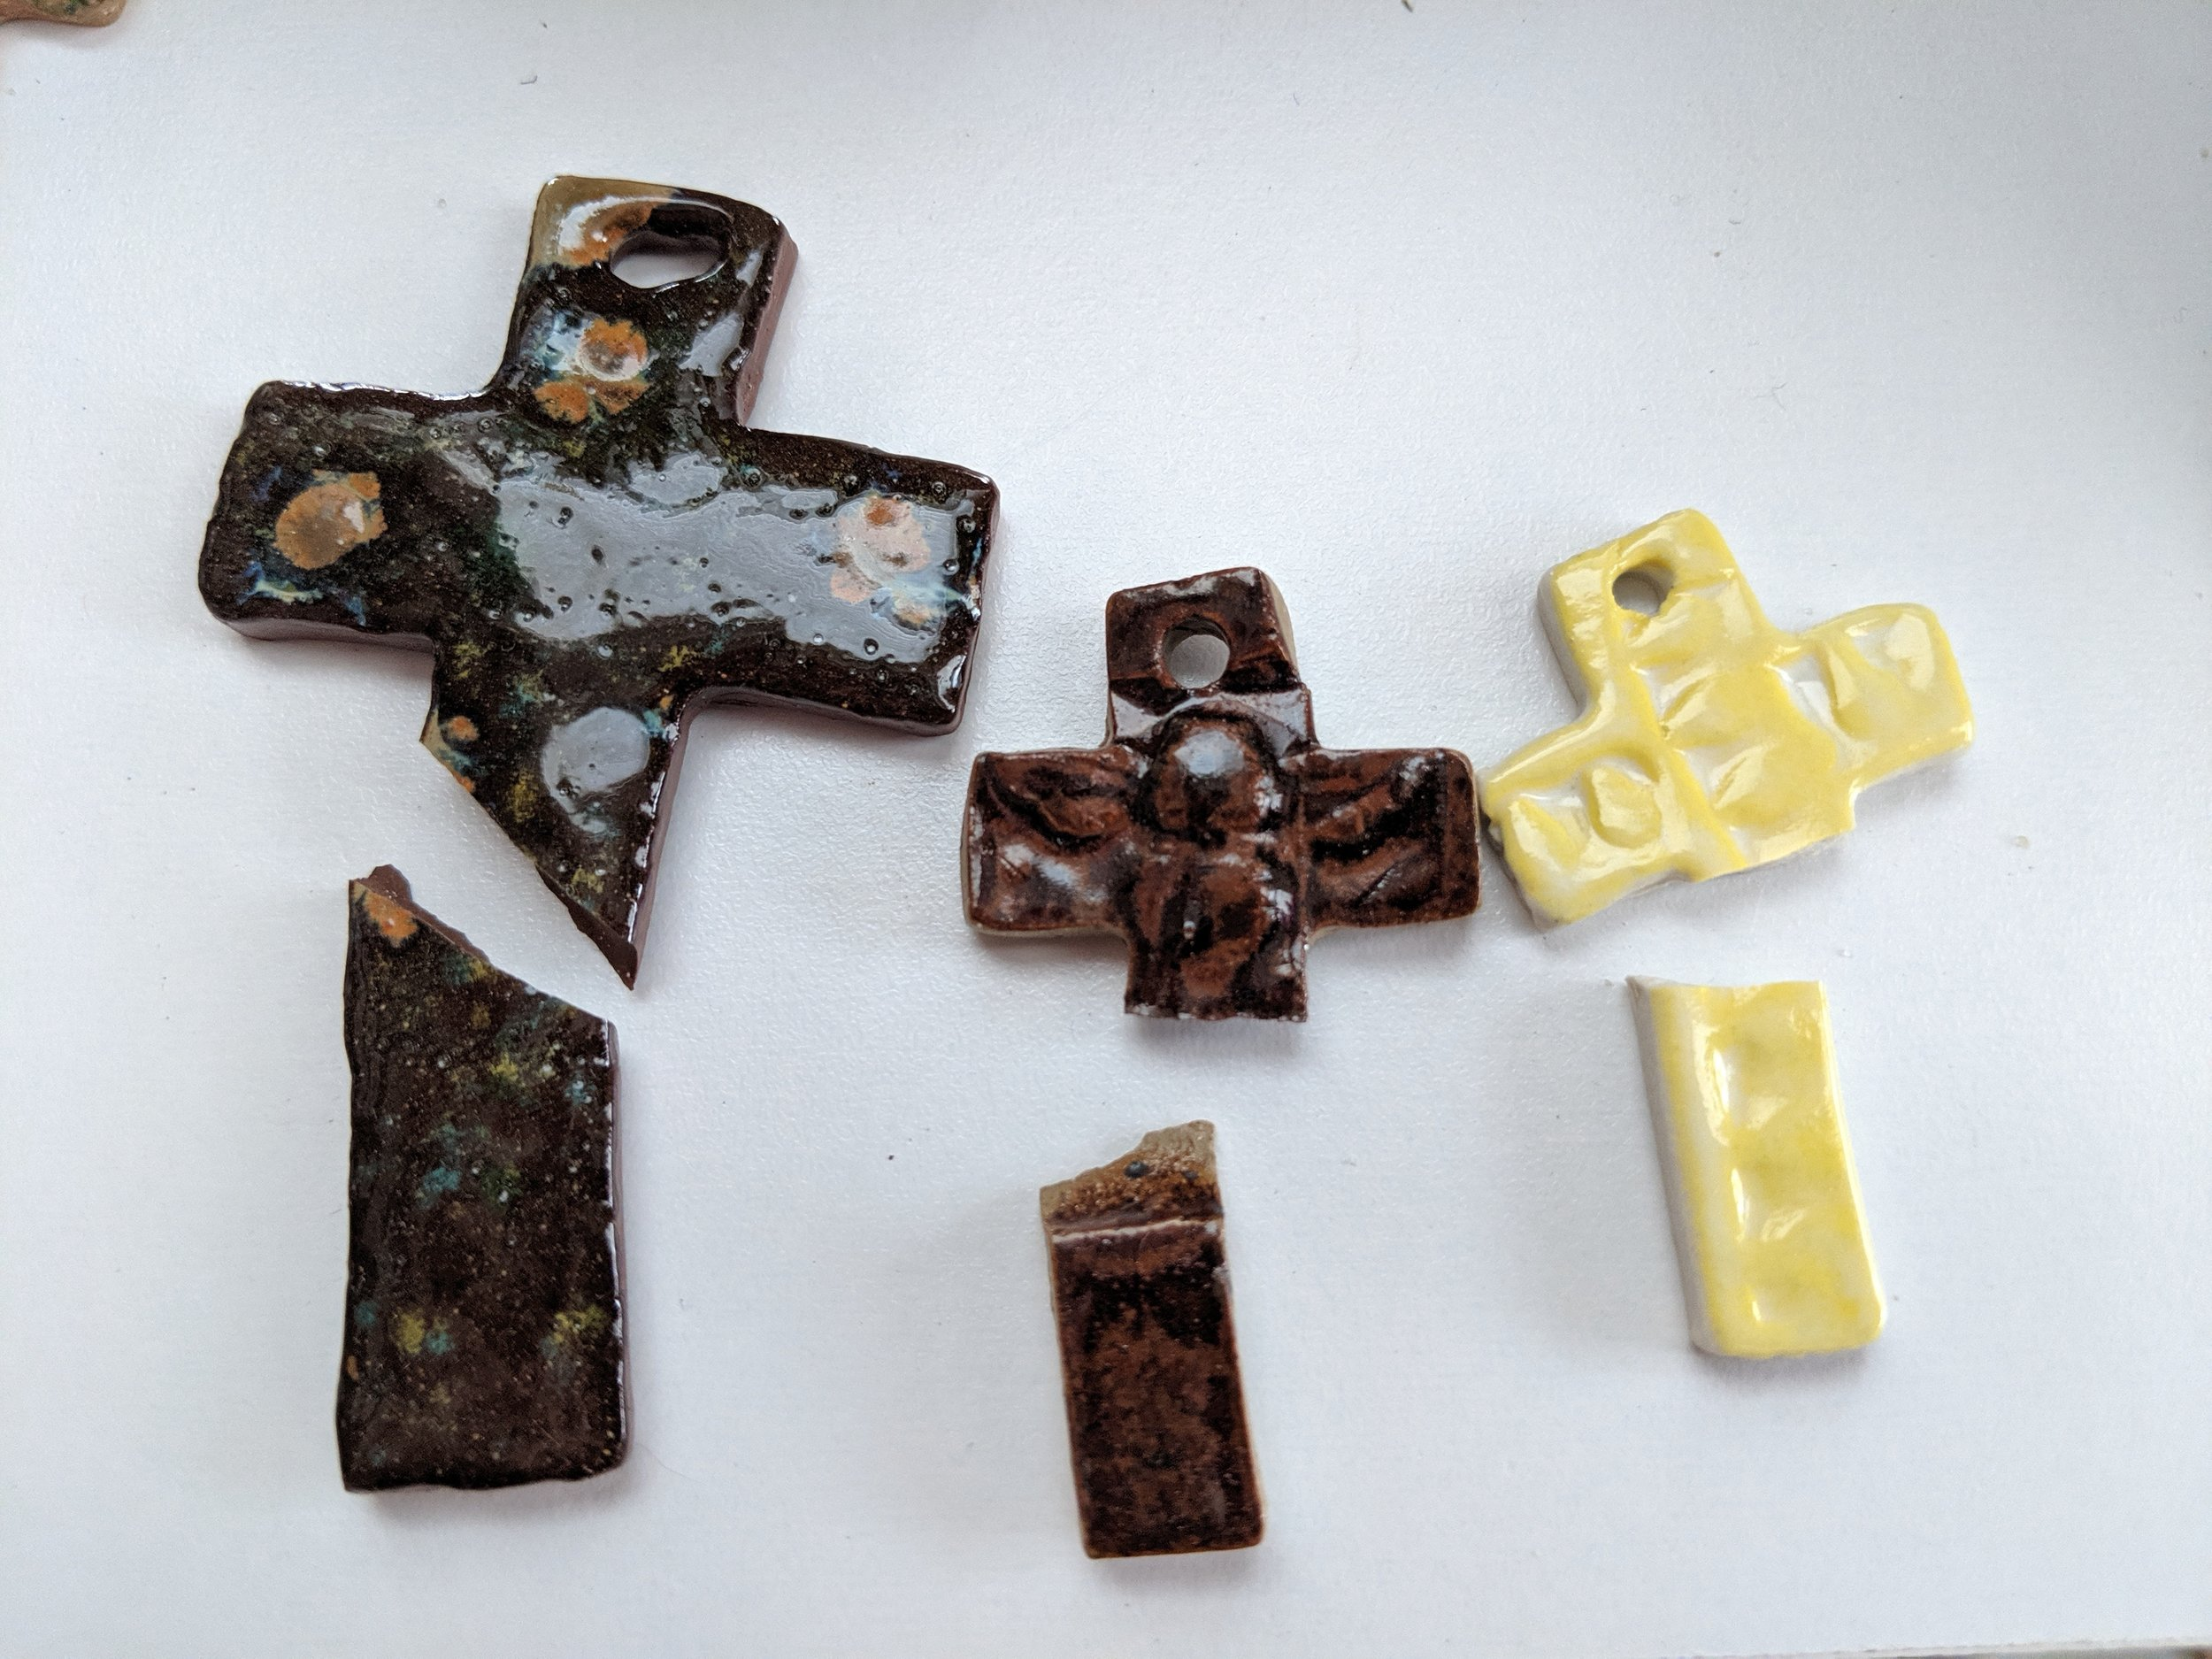 I keep my broken crosses for future mosaic projects.